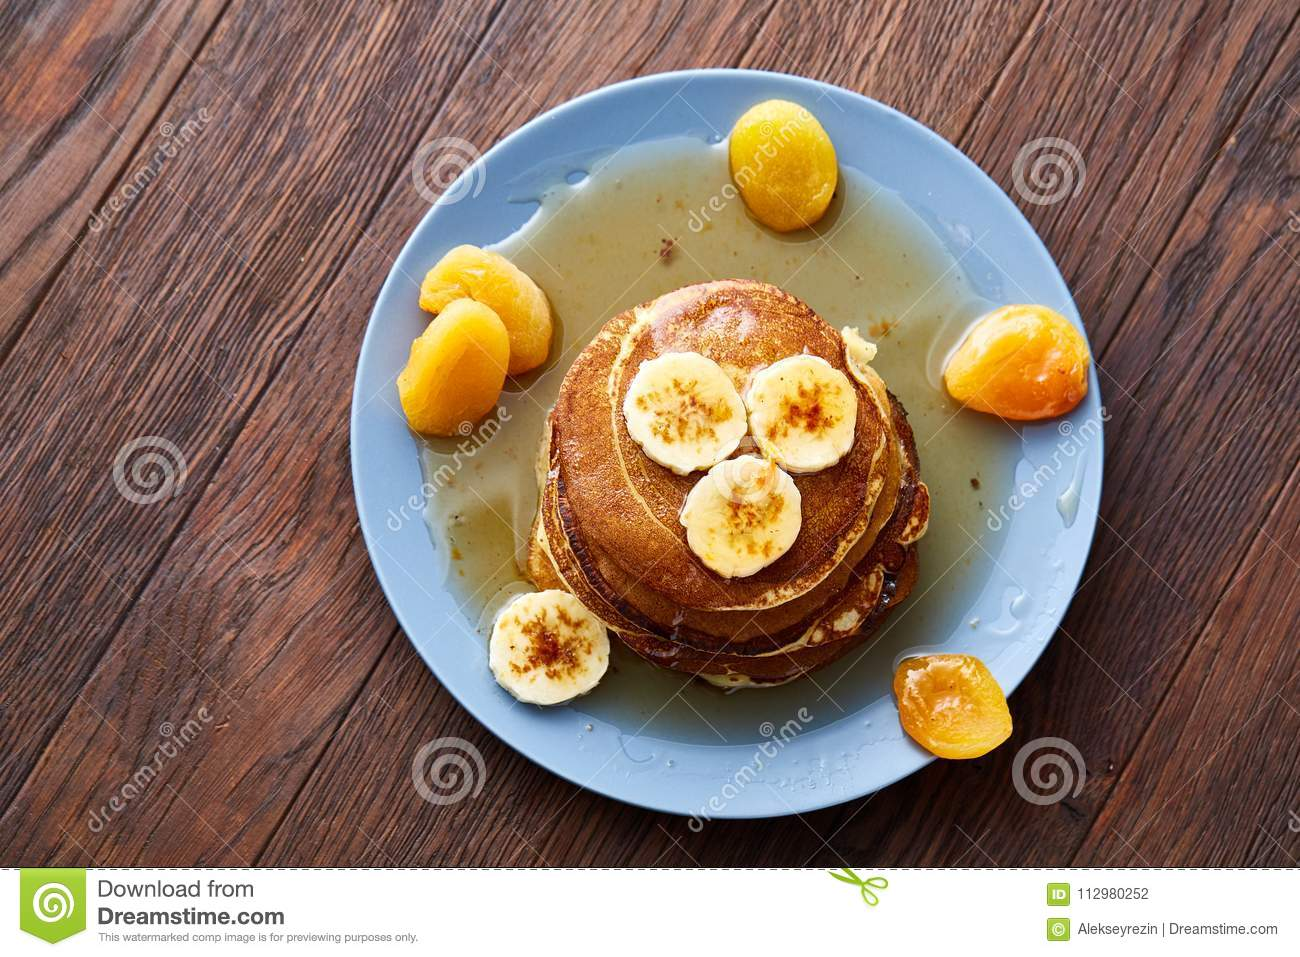 Pile of homemade pancakes with honey and walnuts on rustic wooden background, selective focus